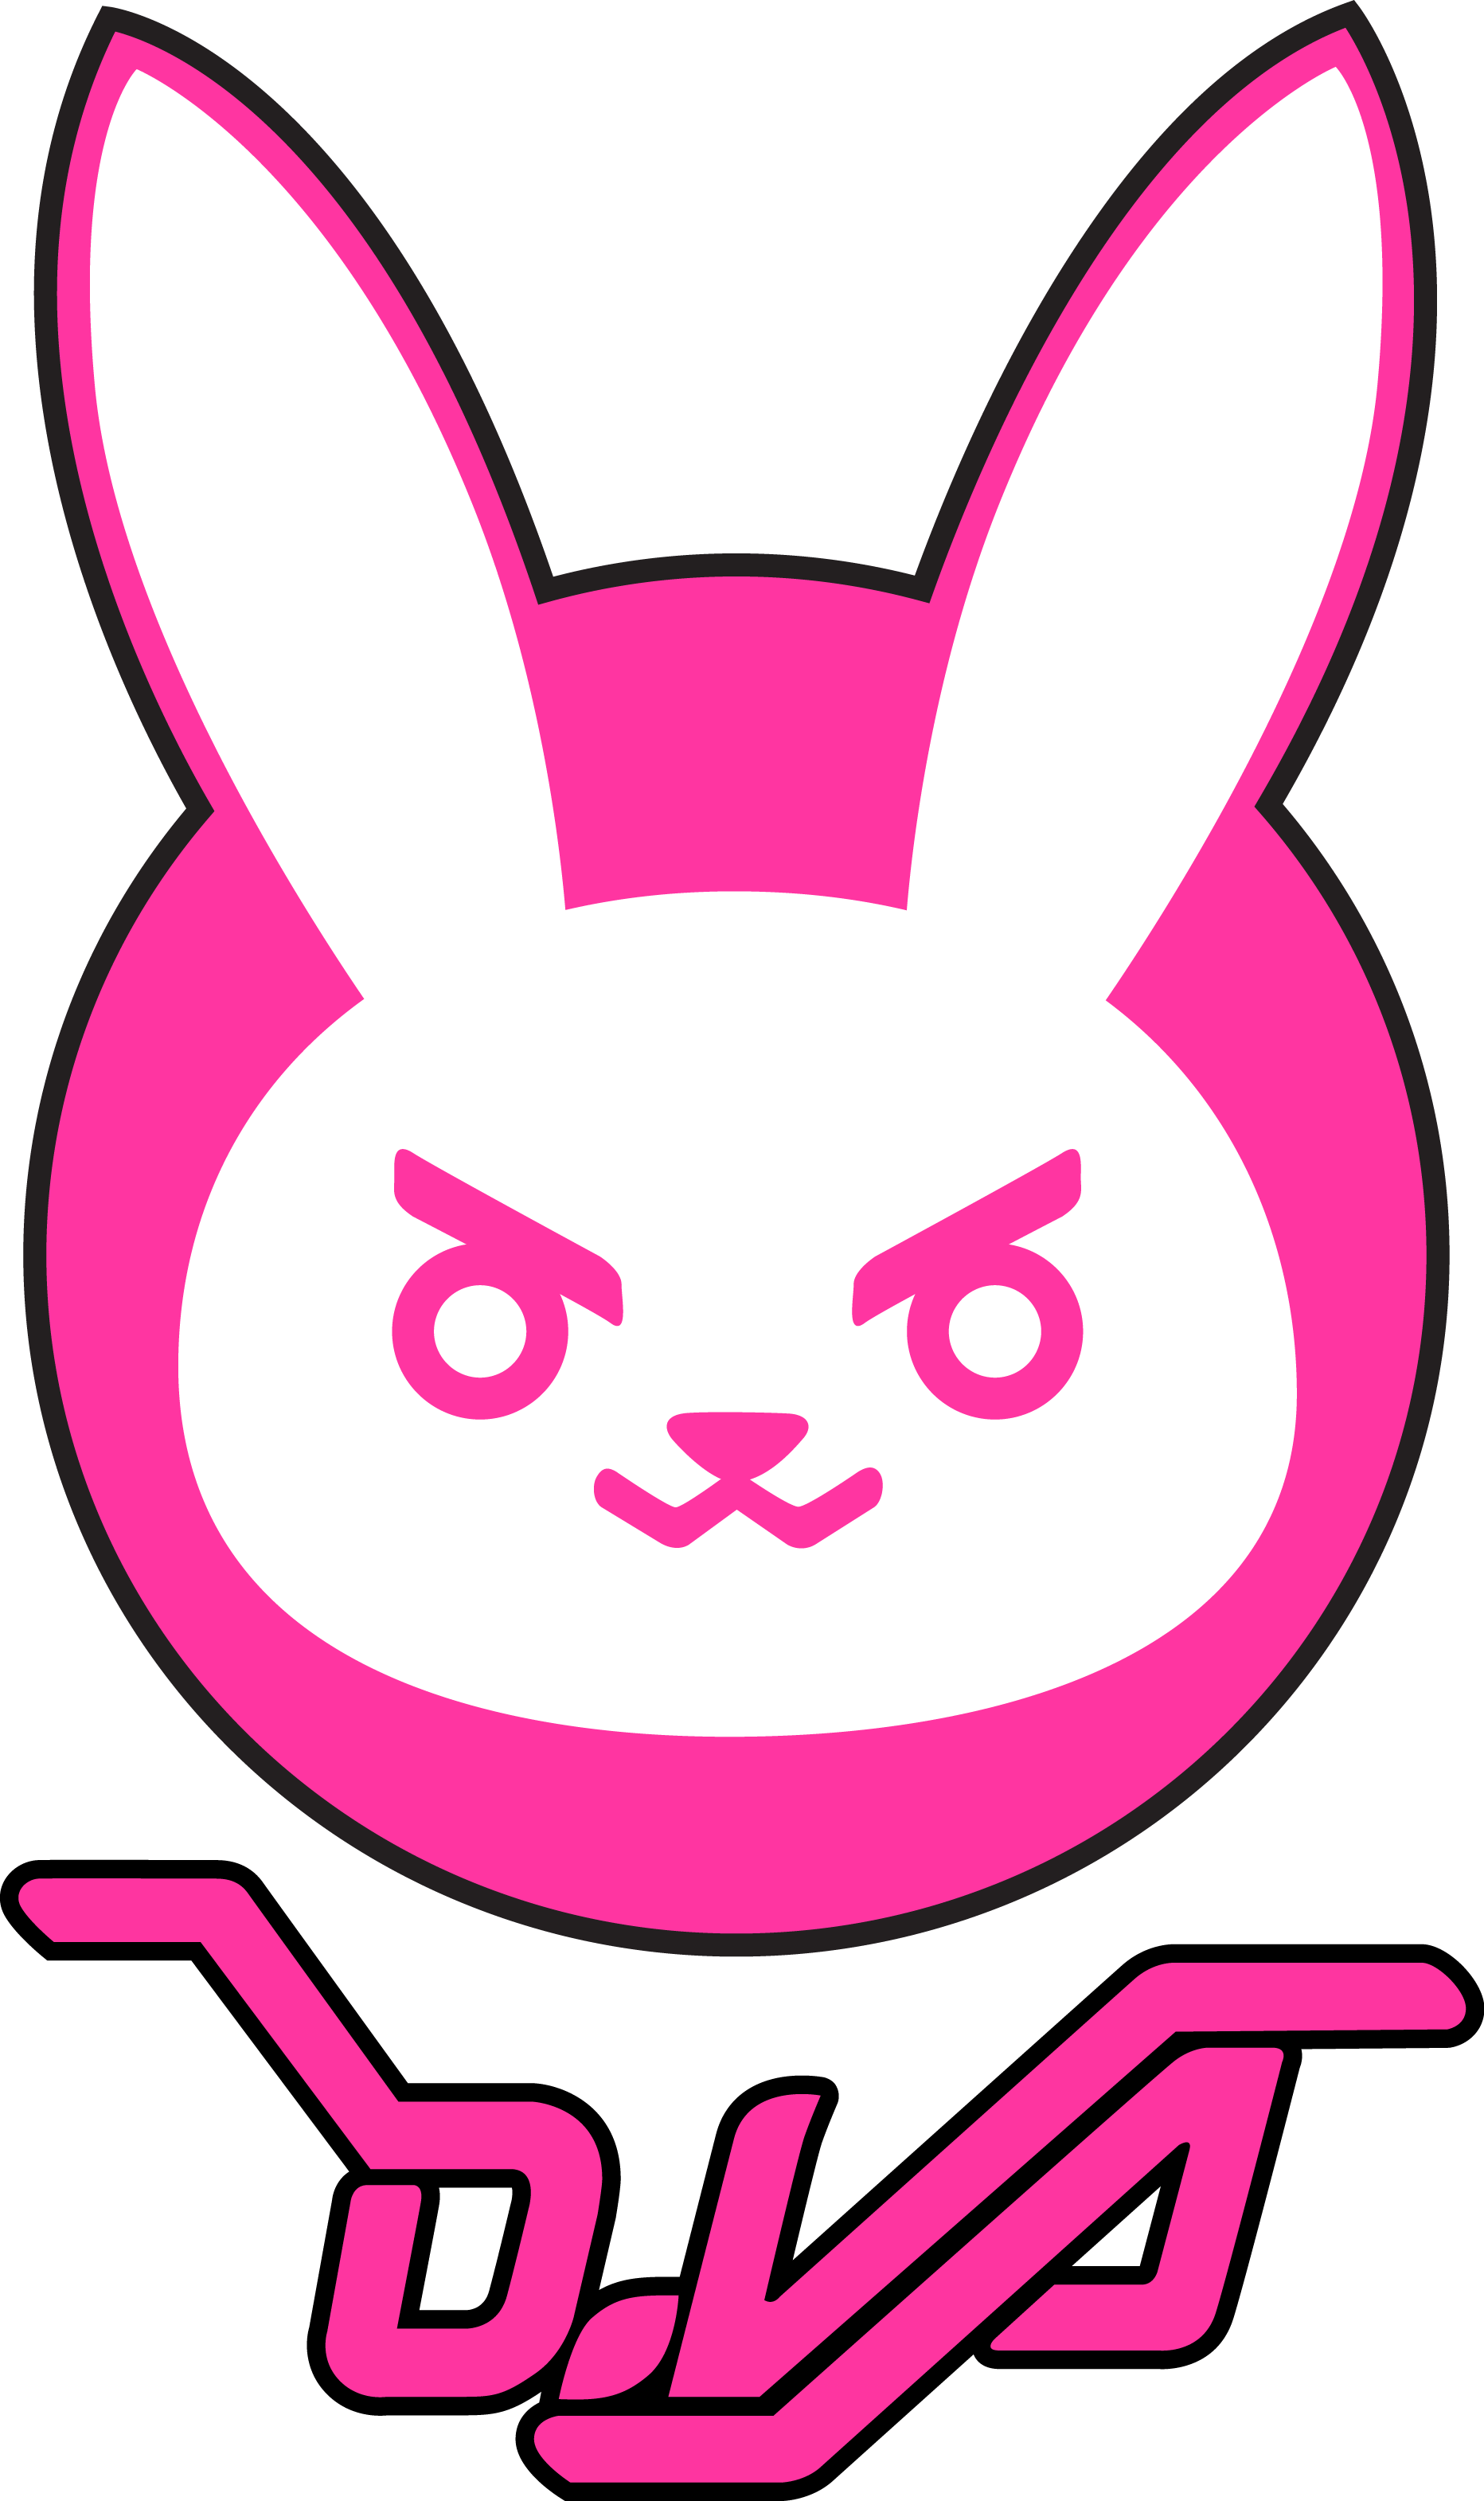 Dva overwatch png. Image result for d